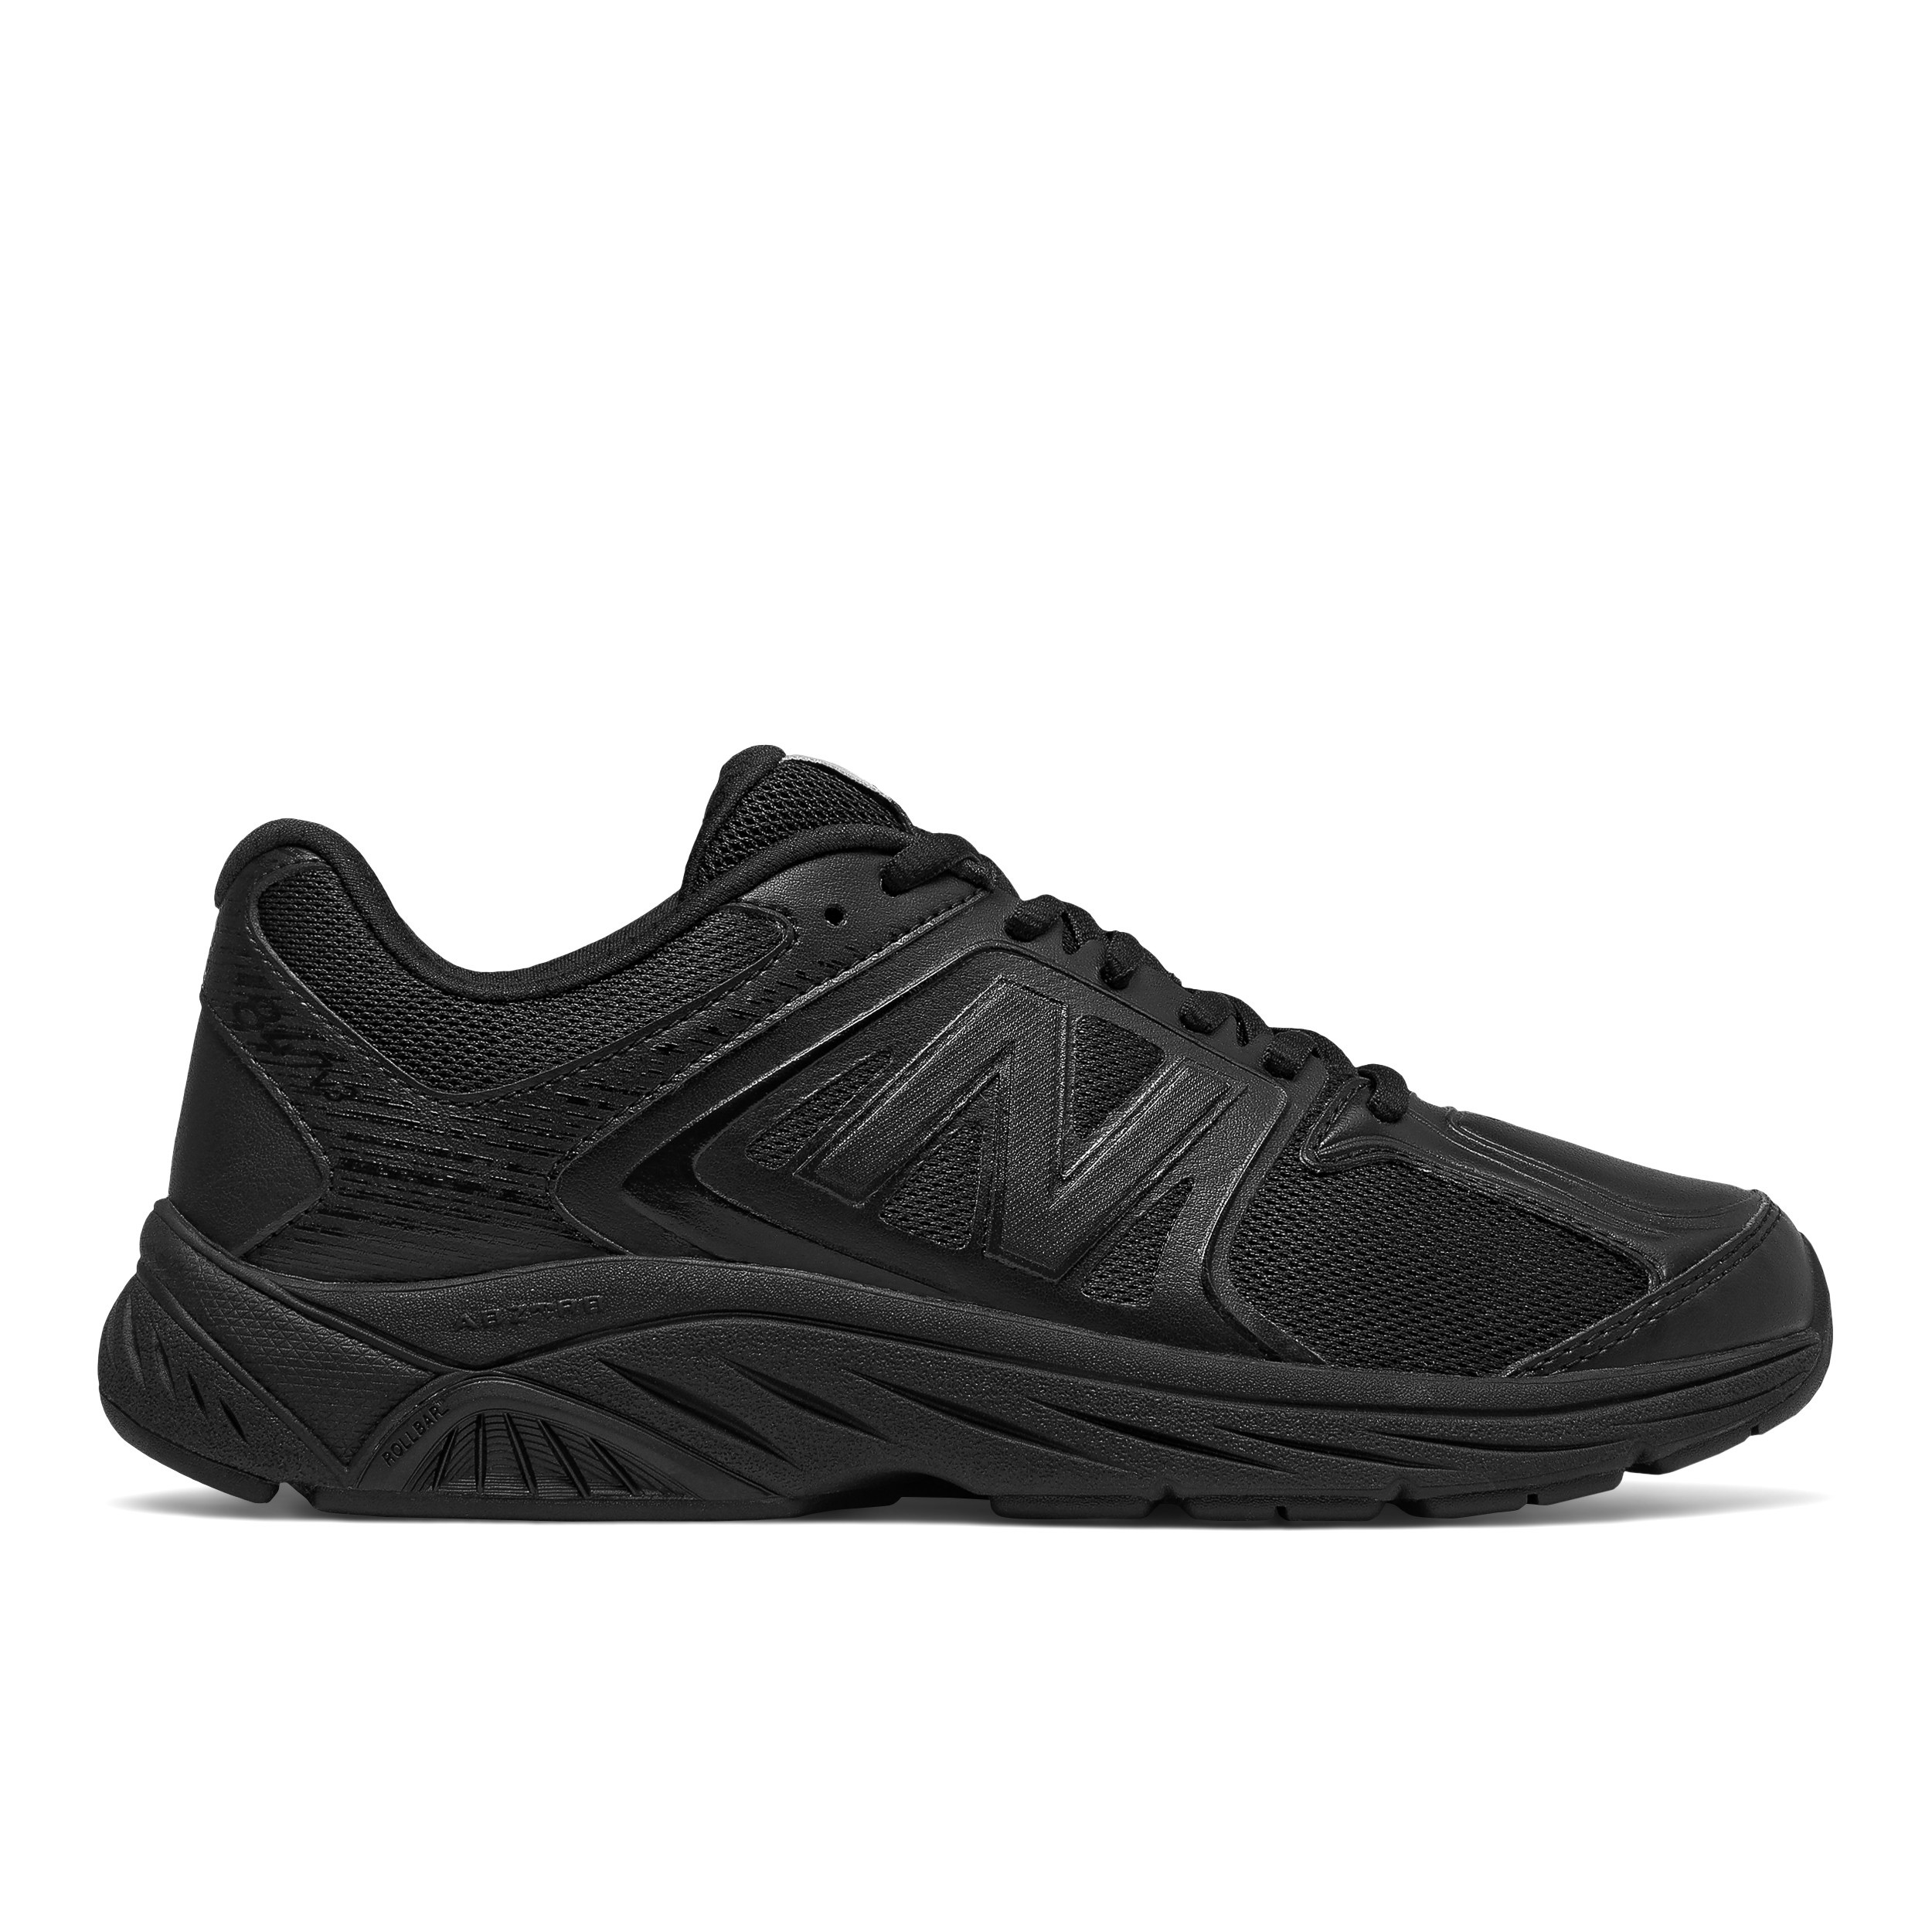 Womens 847 Walking Motion Control Wos V3 by New Balance